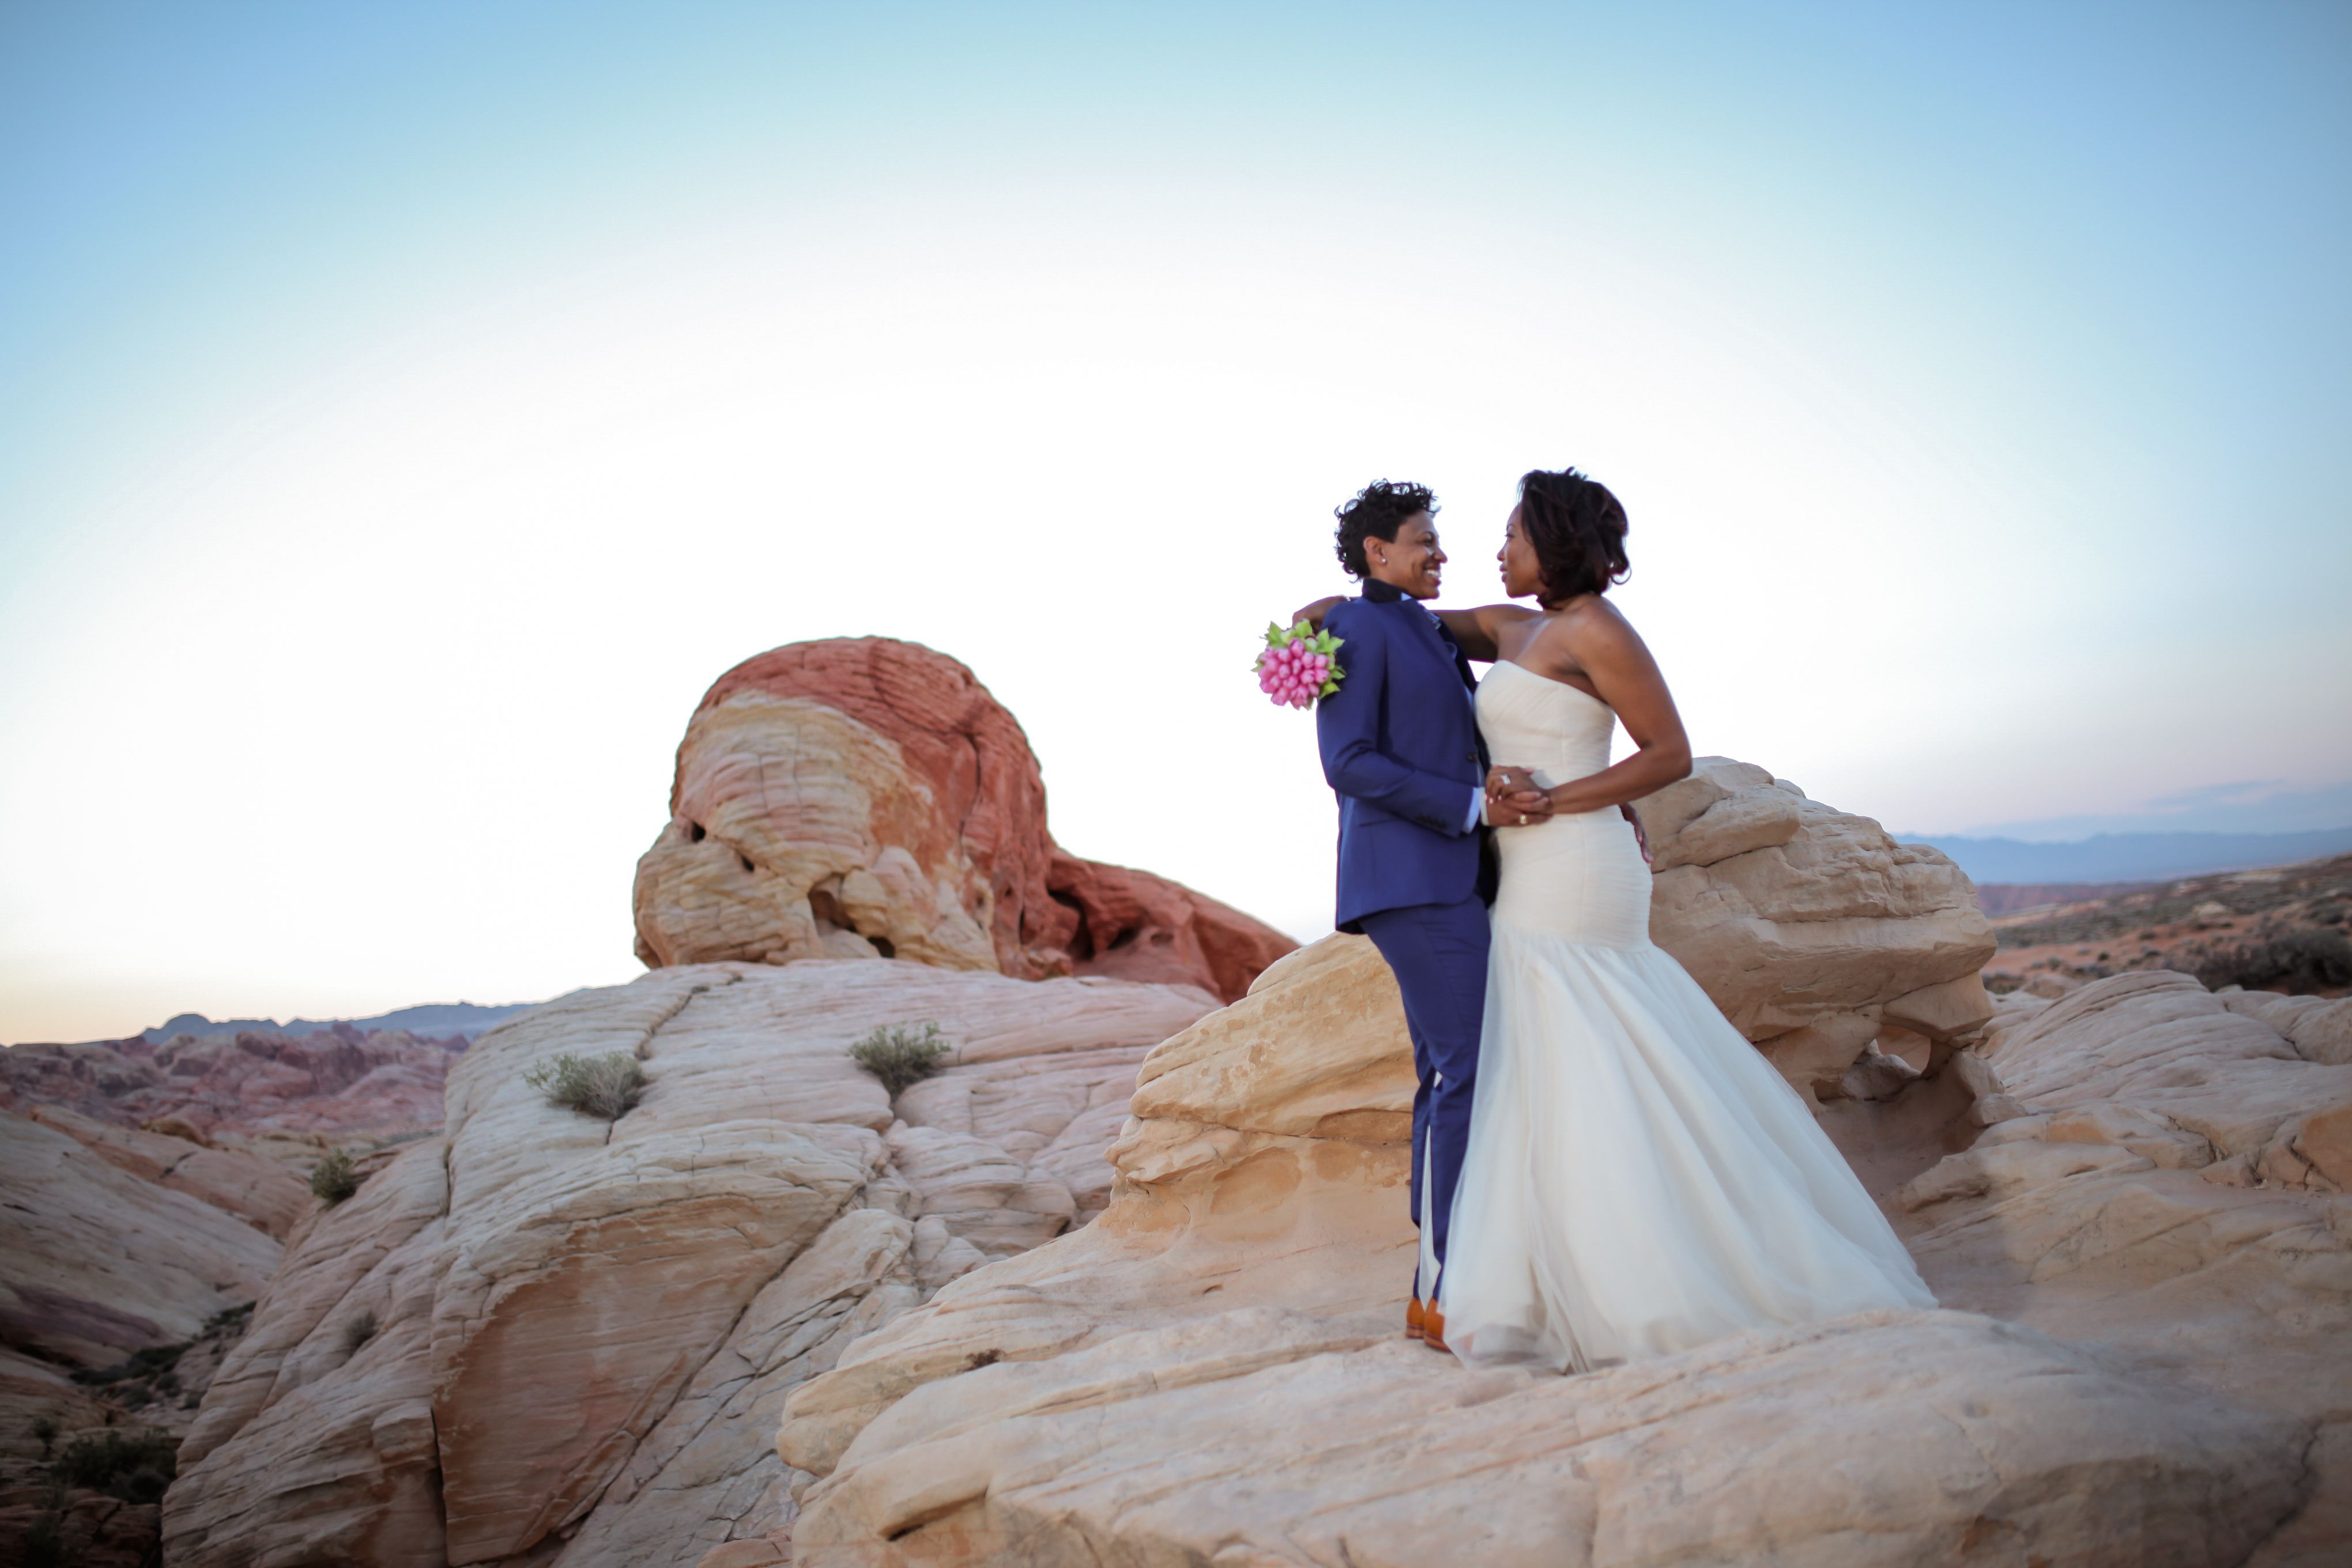 vegas wedding packages Chapel of the Flowers LGBT Wedding Las Vegas Wedding Chapel Same Sex